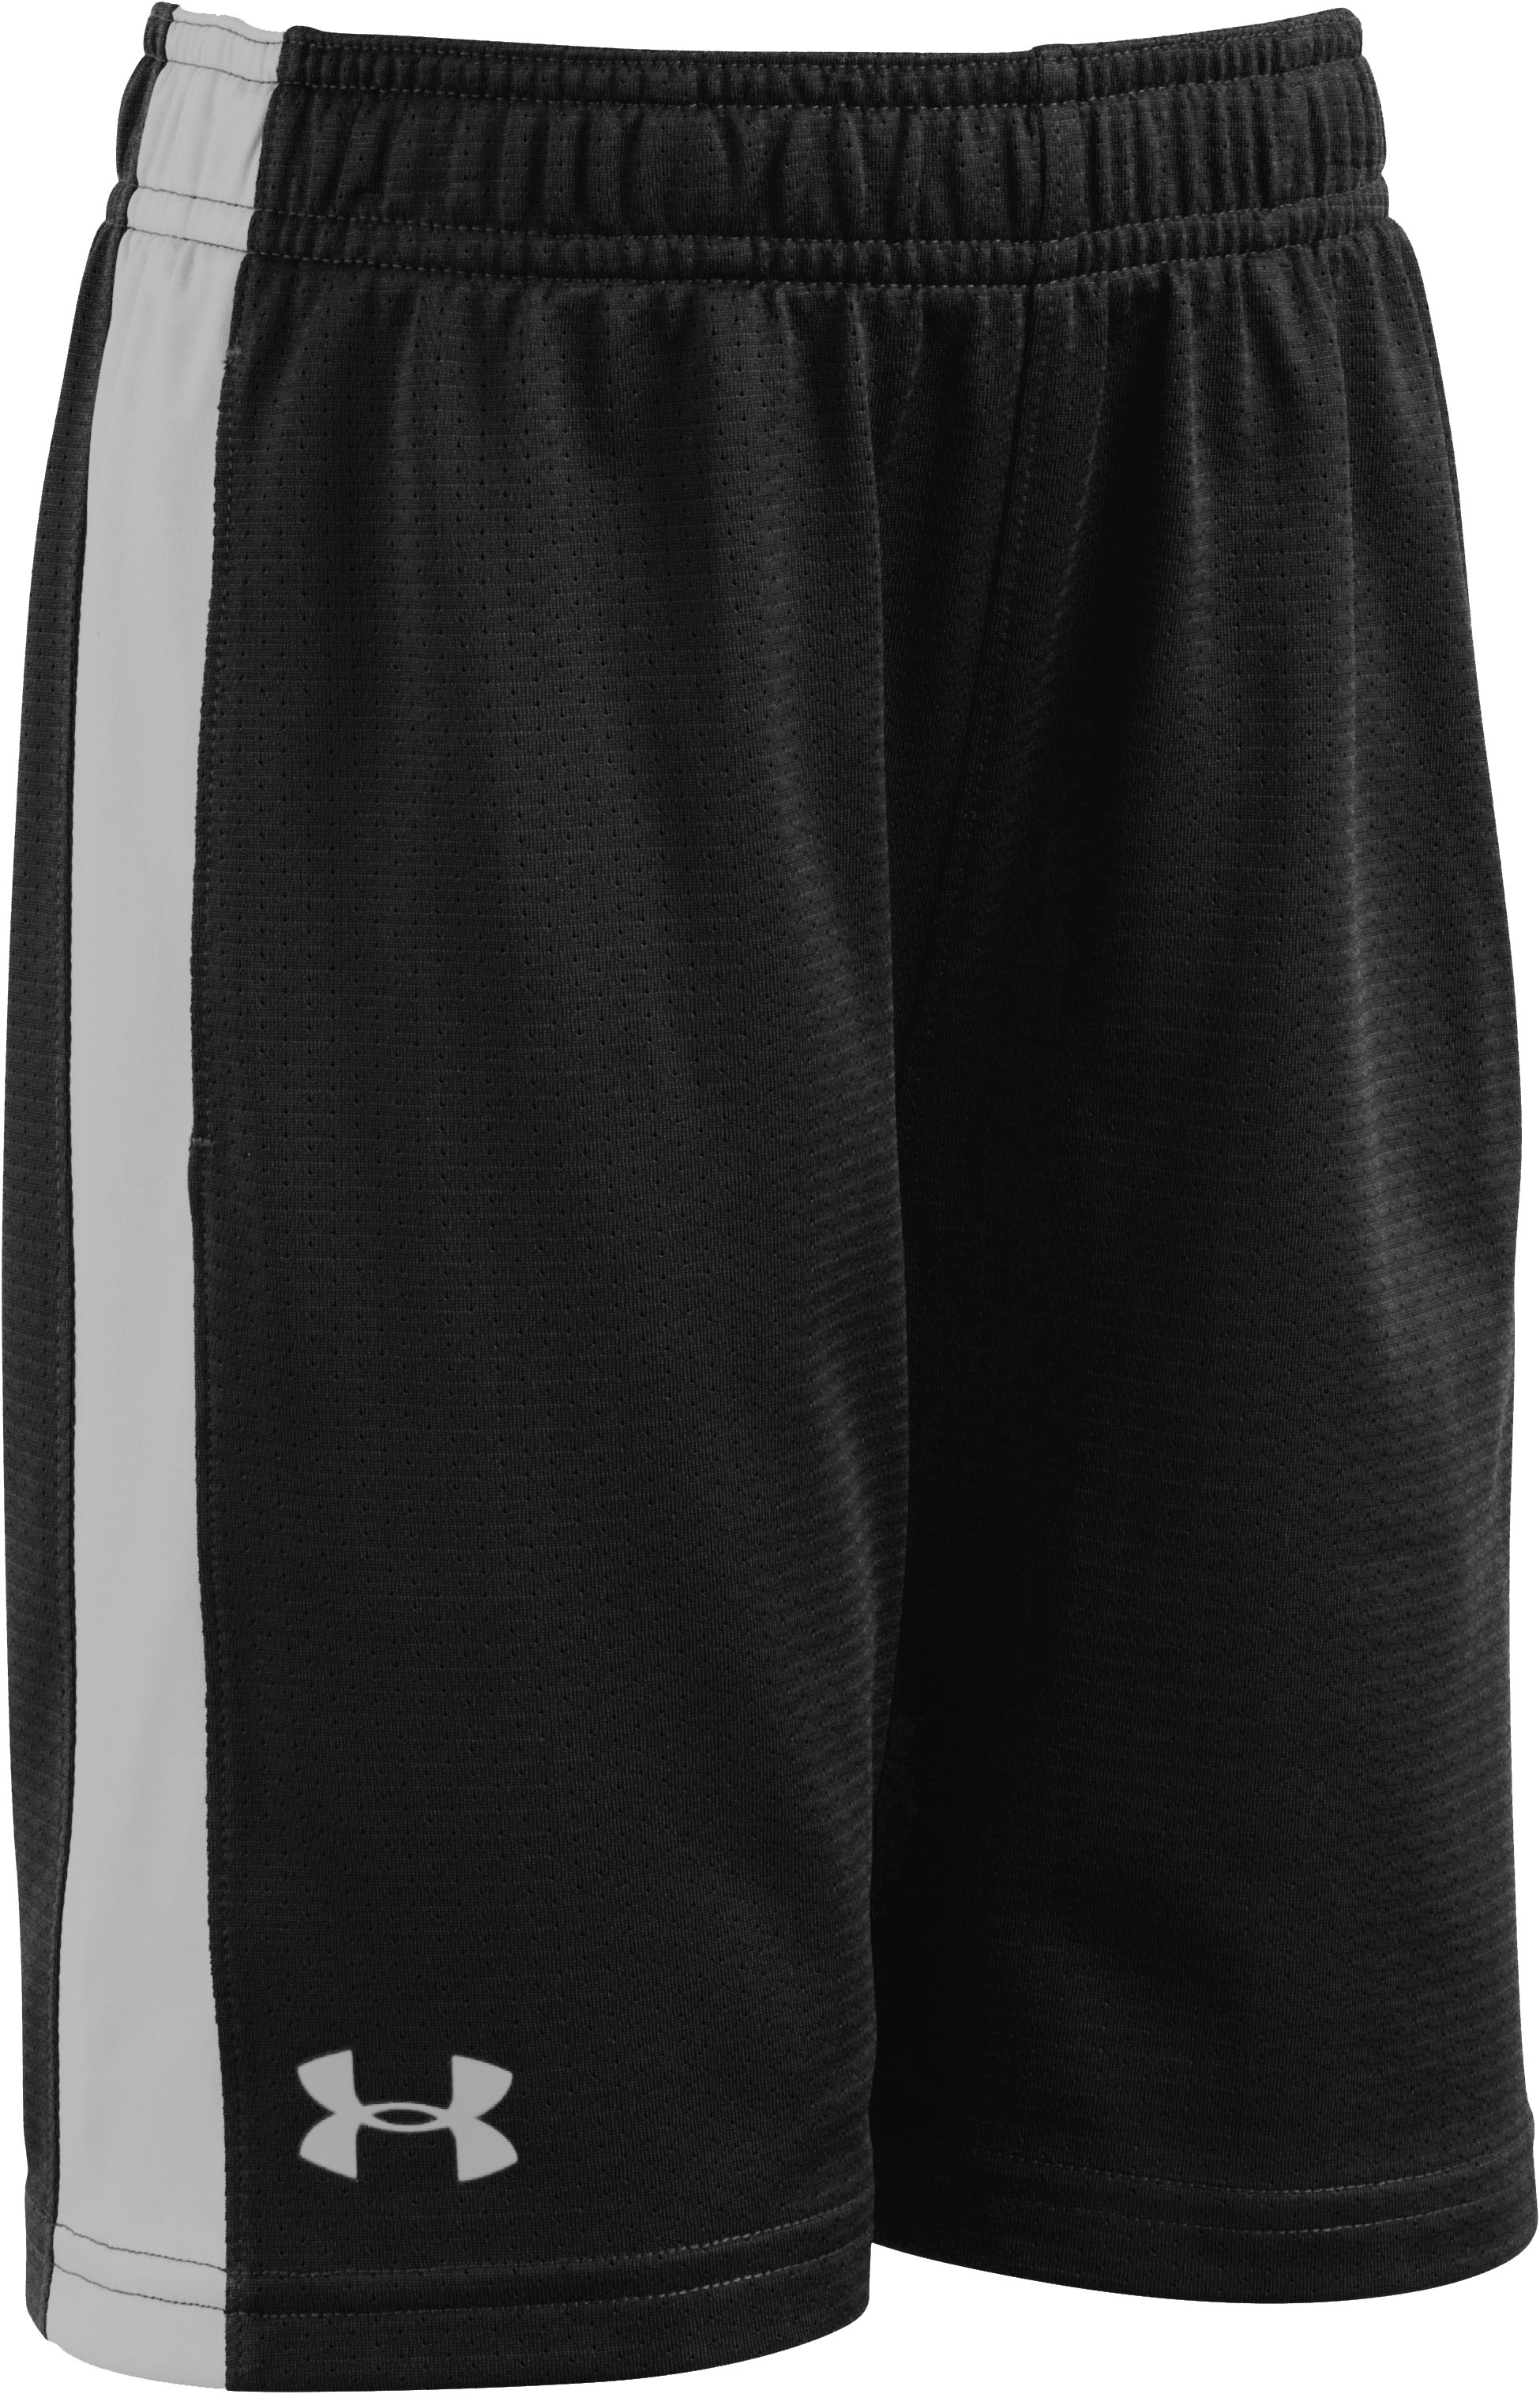 Boys' Toddler UA Mesh Eliminator Shorts, Black